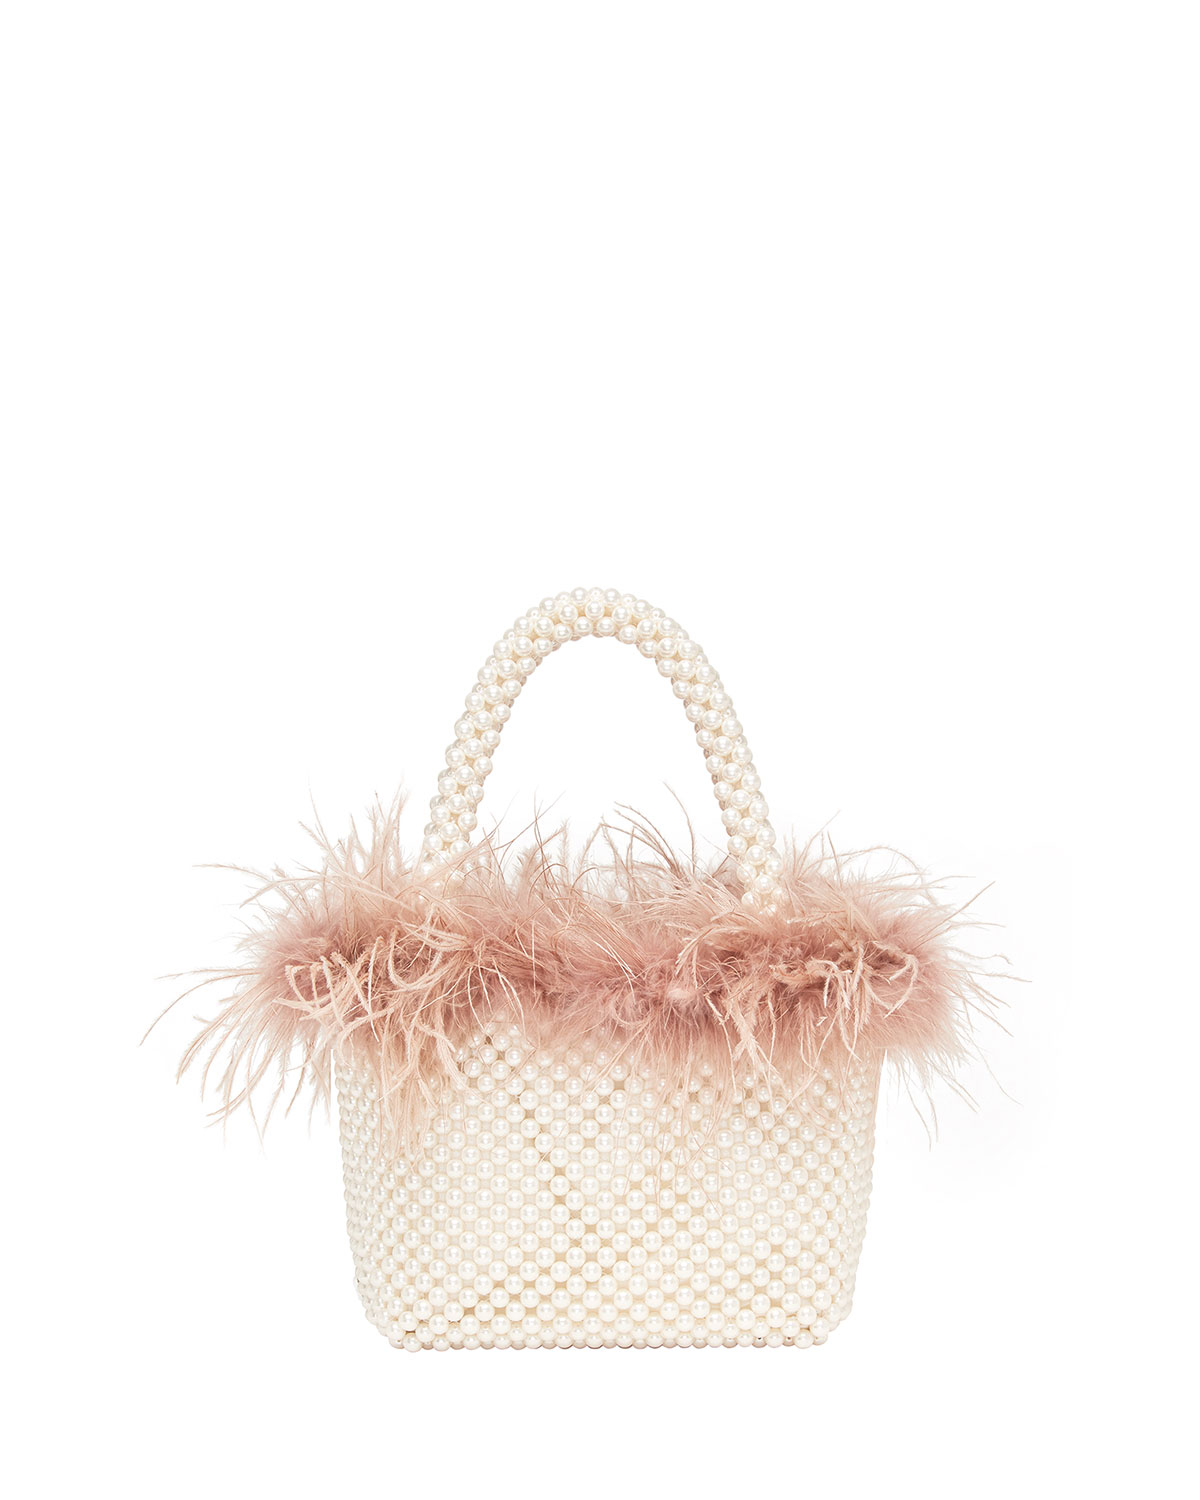 Loeffler Randall Totes MINA MINI BEADED TOTE BAG WITH FEATHER TRIM